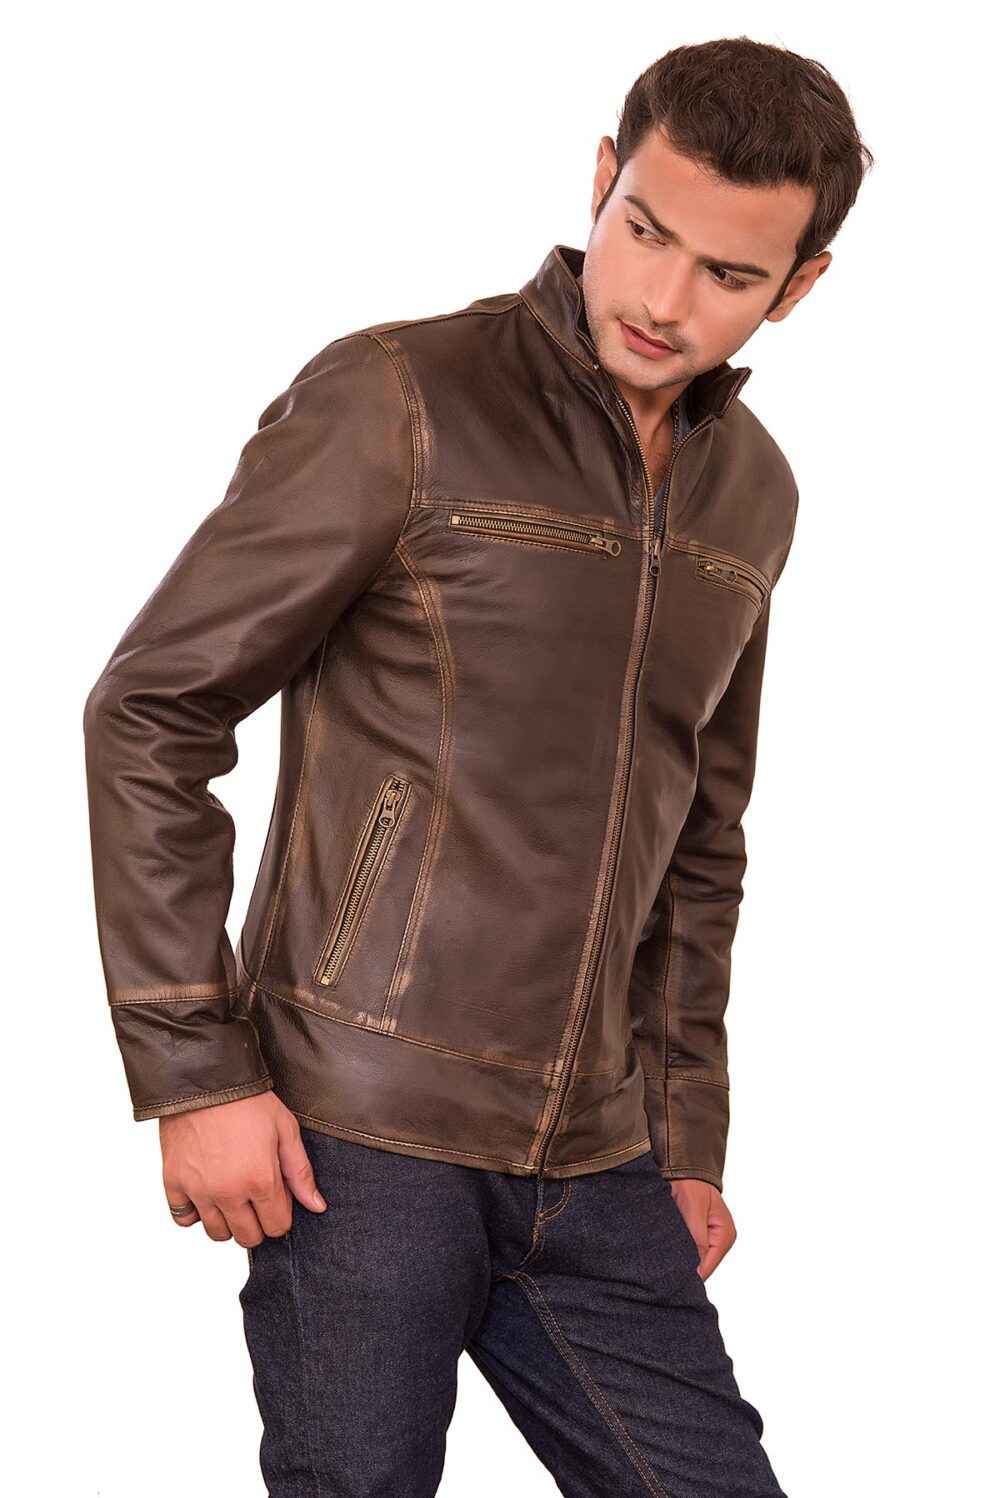 Classic Distressed Brown Triple Stitched Leather Jacket